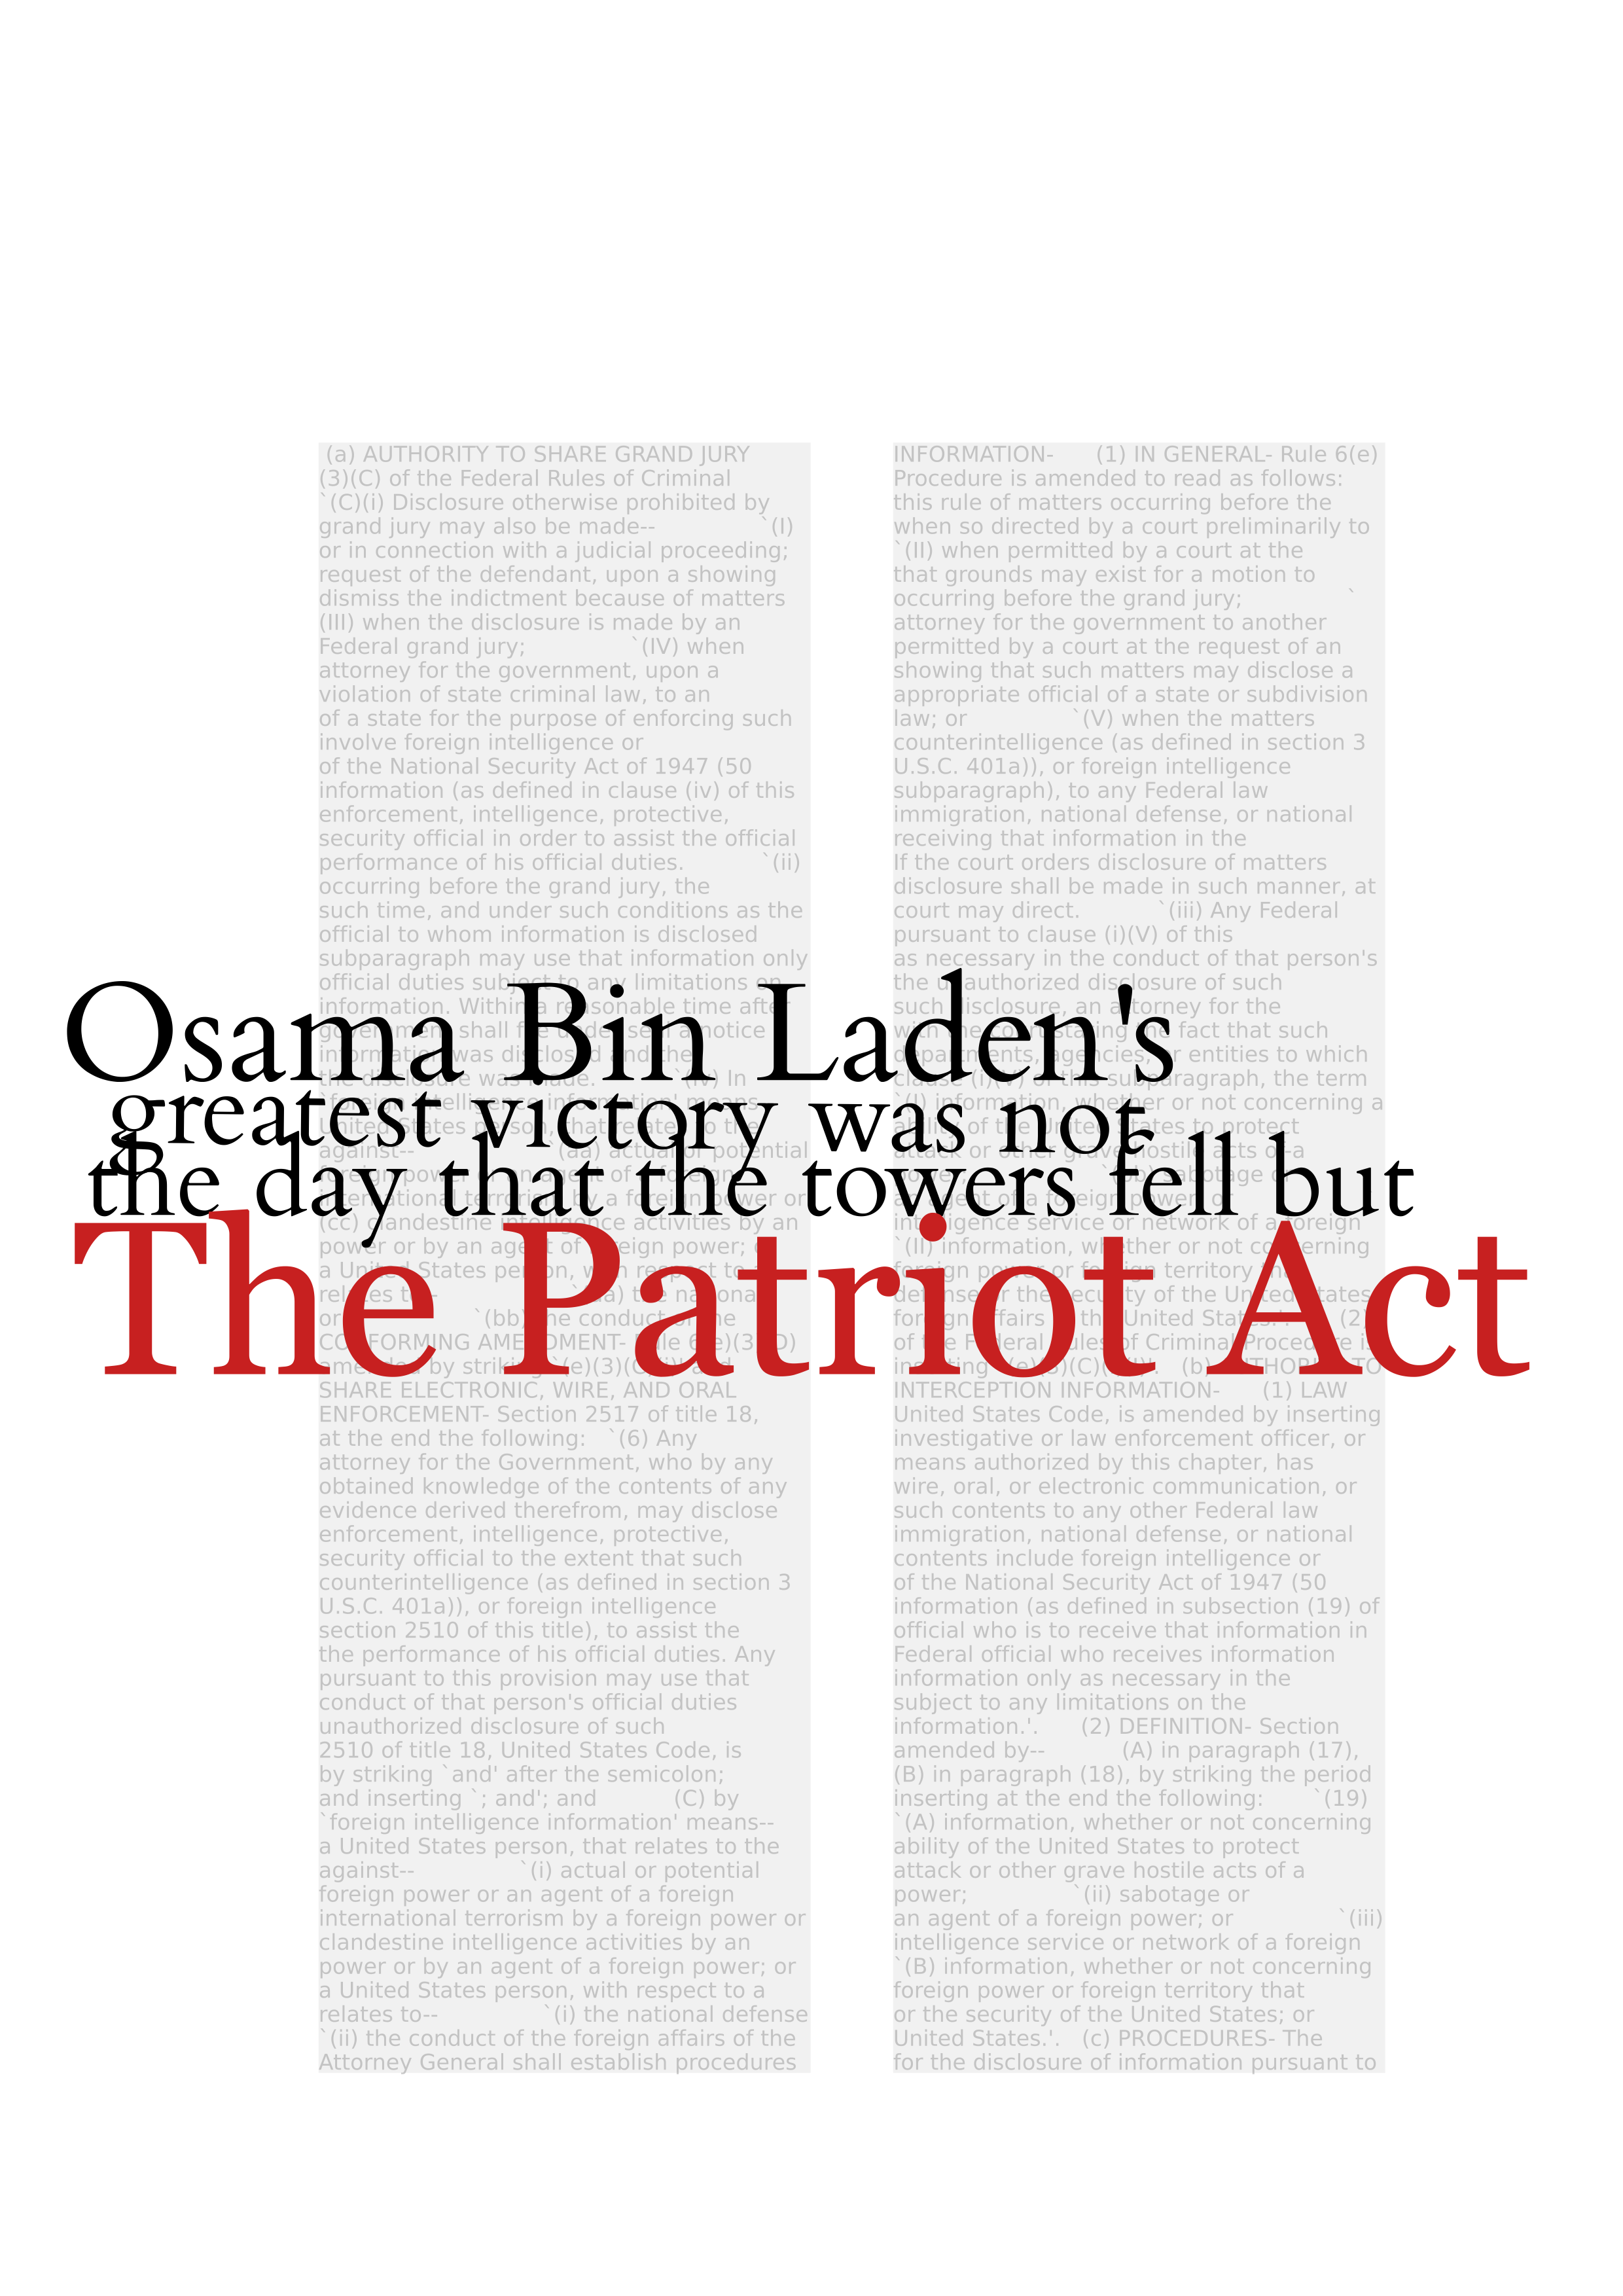 the not so patriot act essay But two other sections of the patriot act would also expire: a so-called lone wolf provision and another section that allows roving wiretaps.